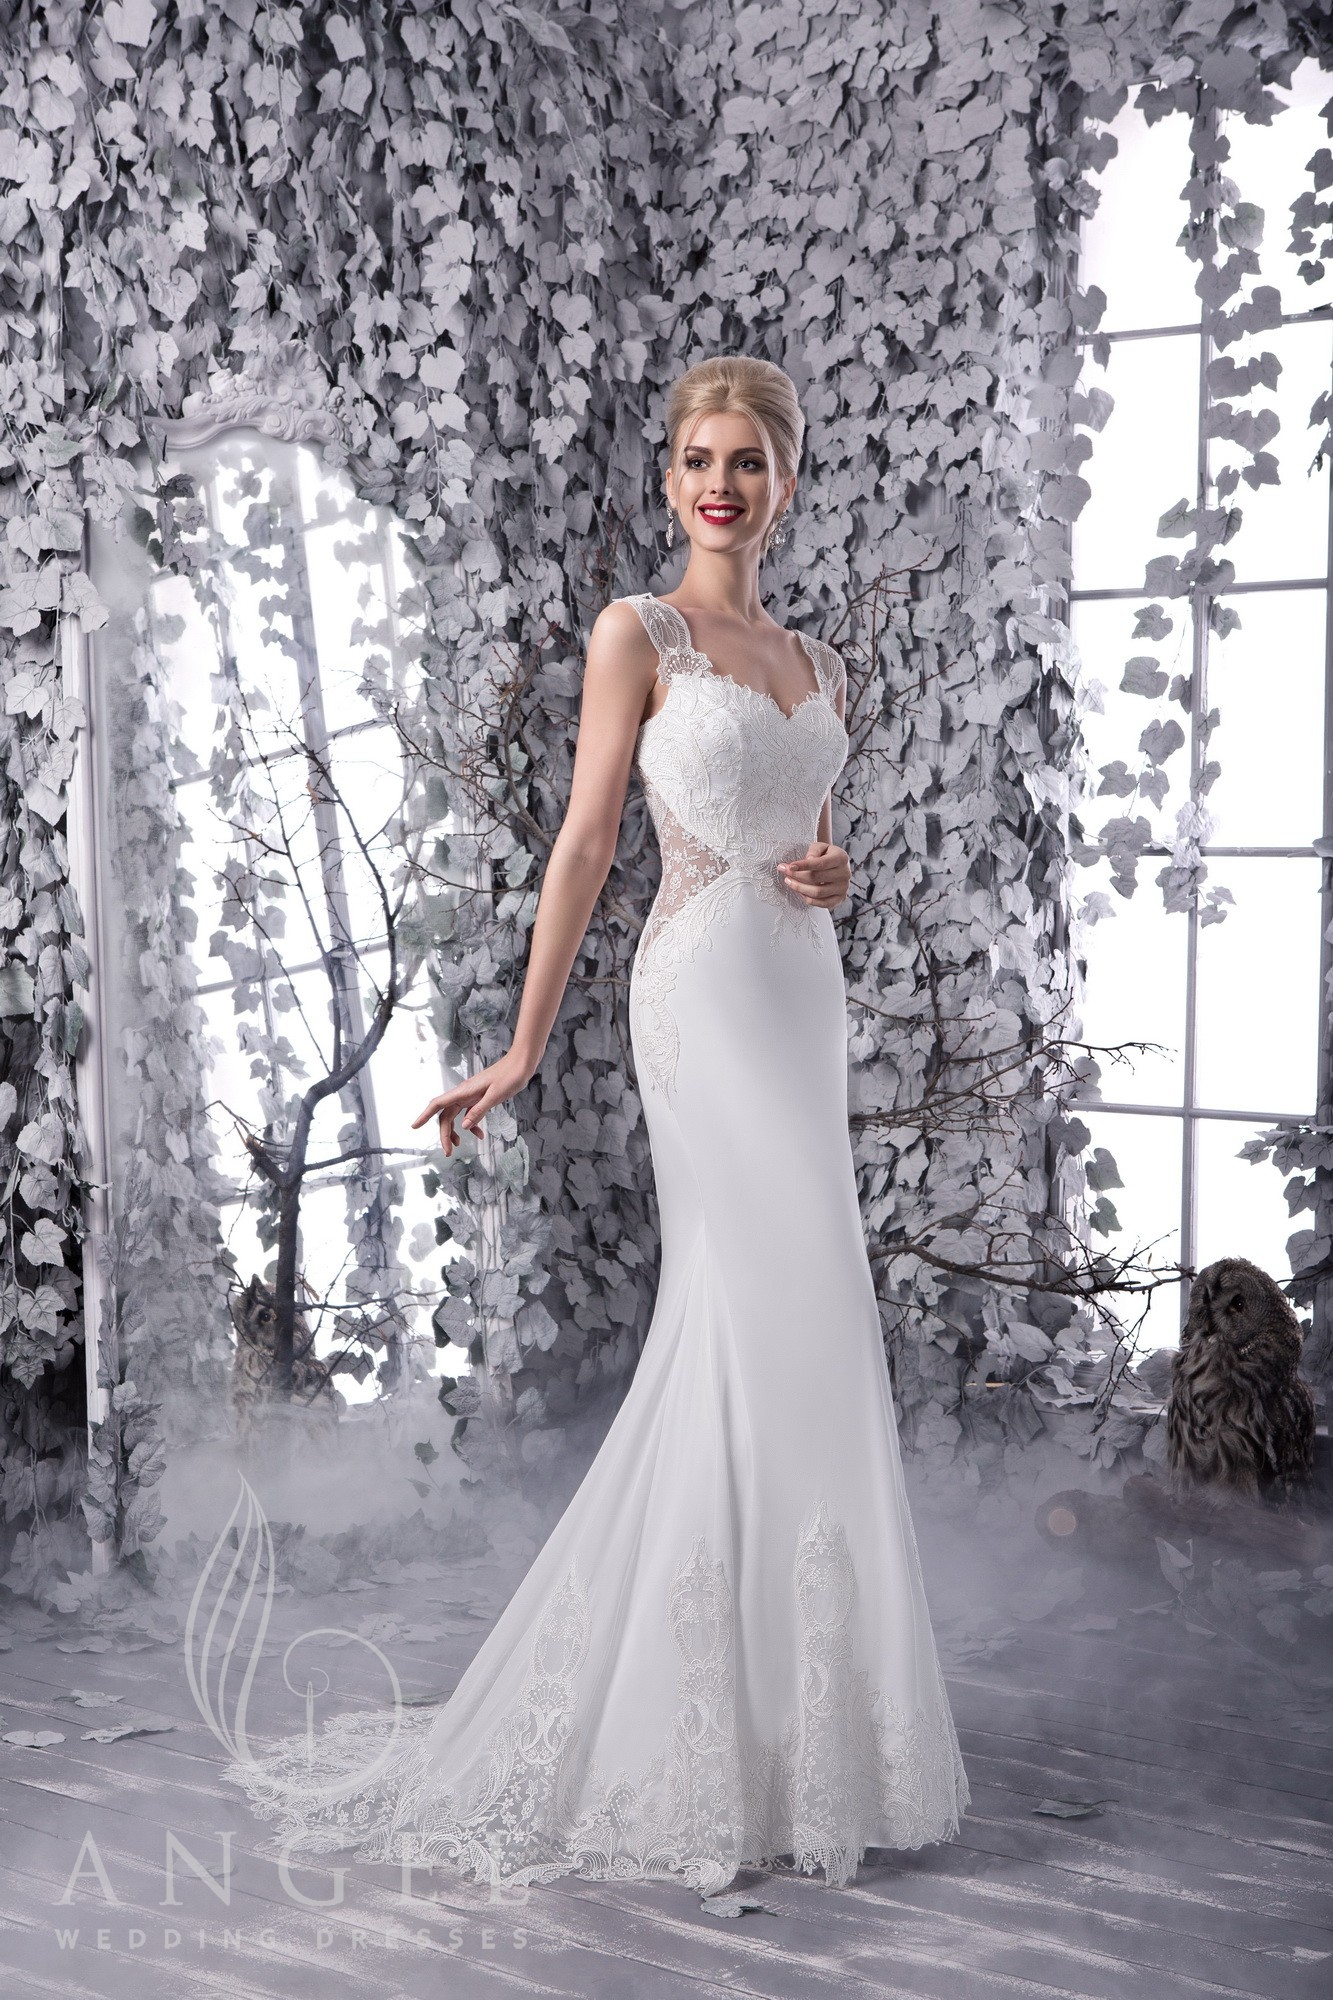 https://angel-novias.com/images/stories/virtuemart/product/Elisa 1.jpg